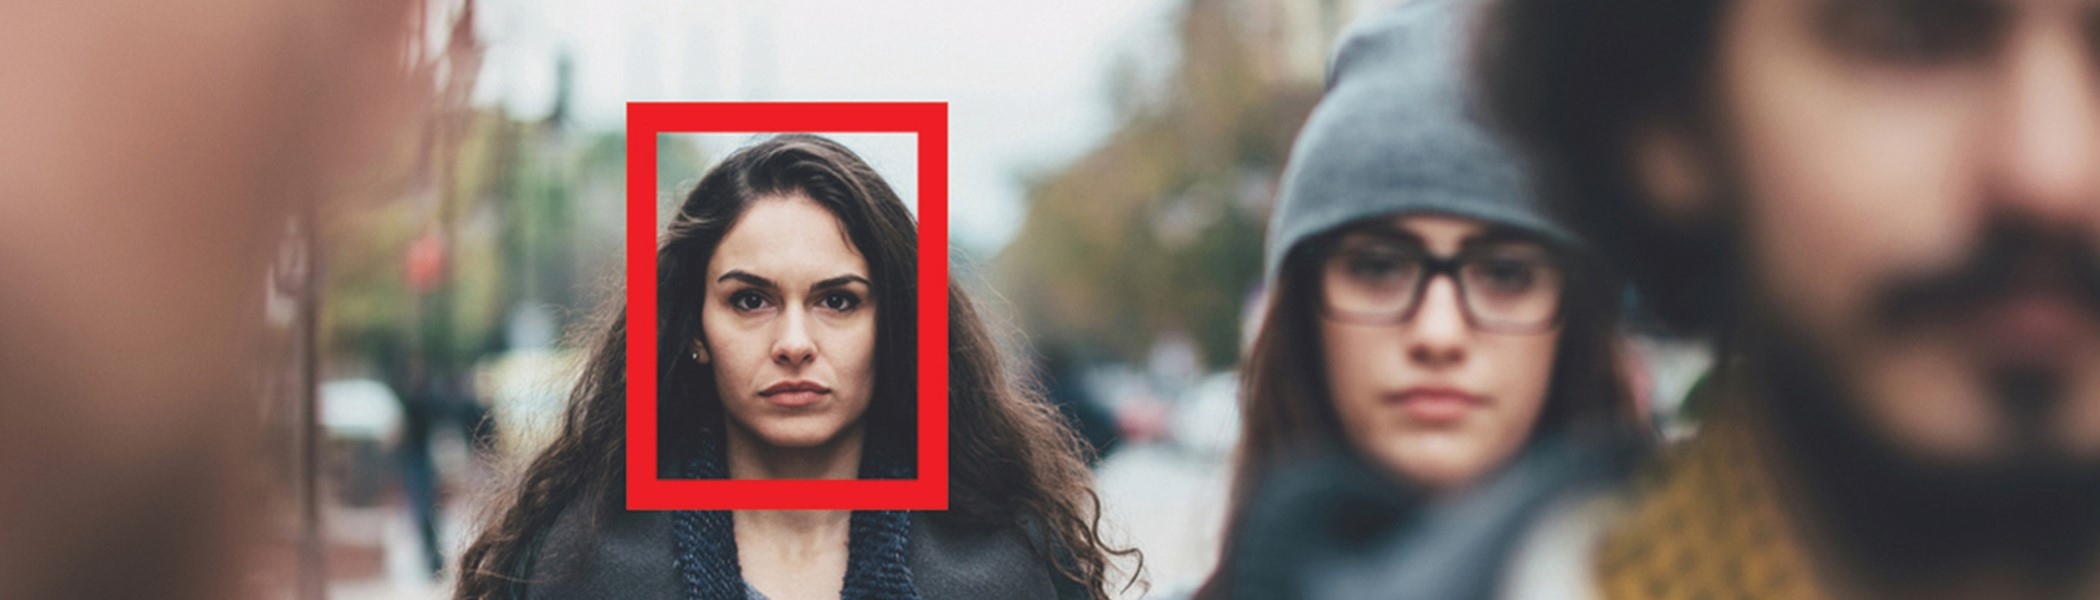 Facial recognition technology and biometric IDs: the face of future surveillance